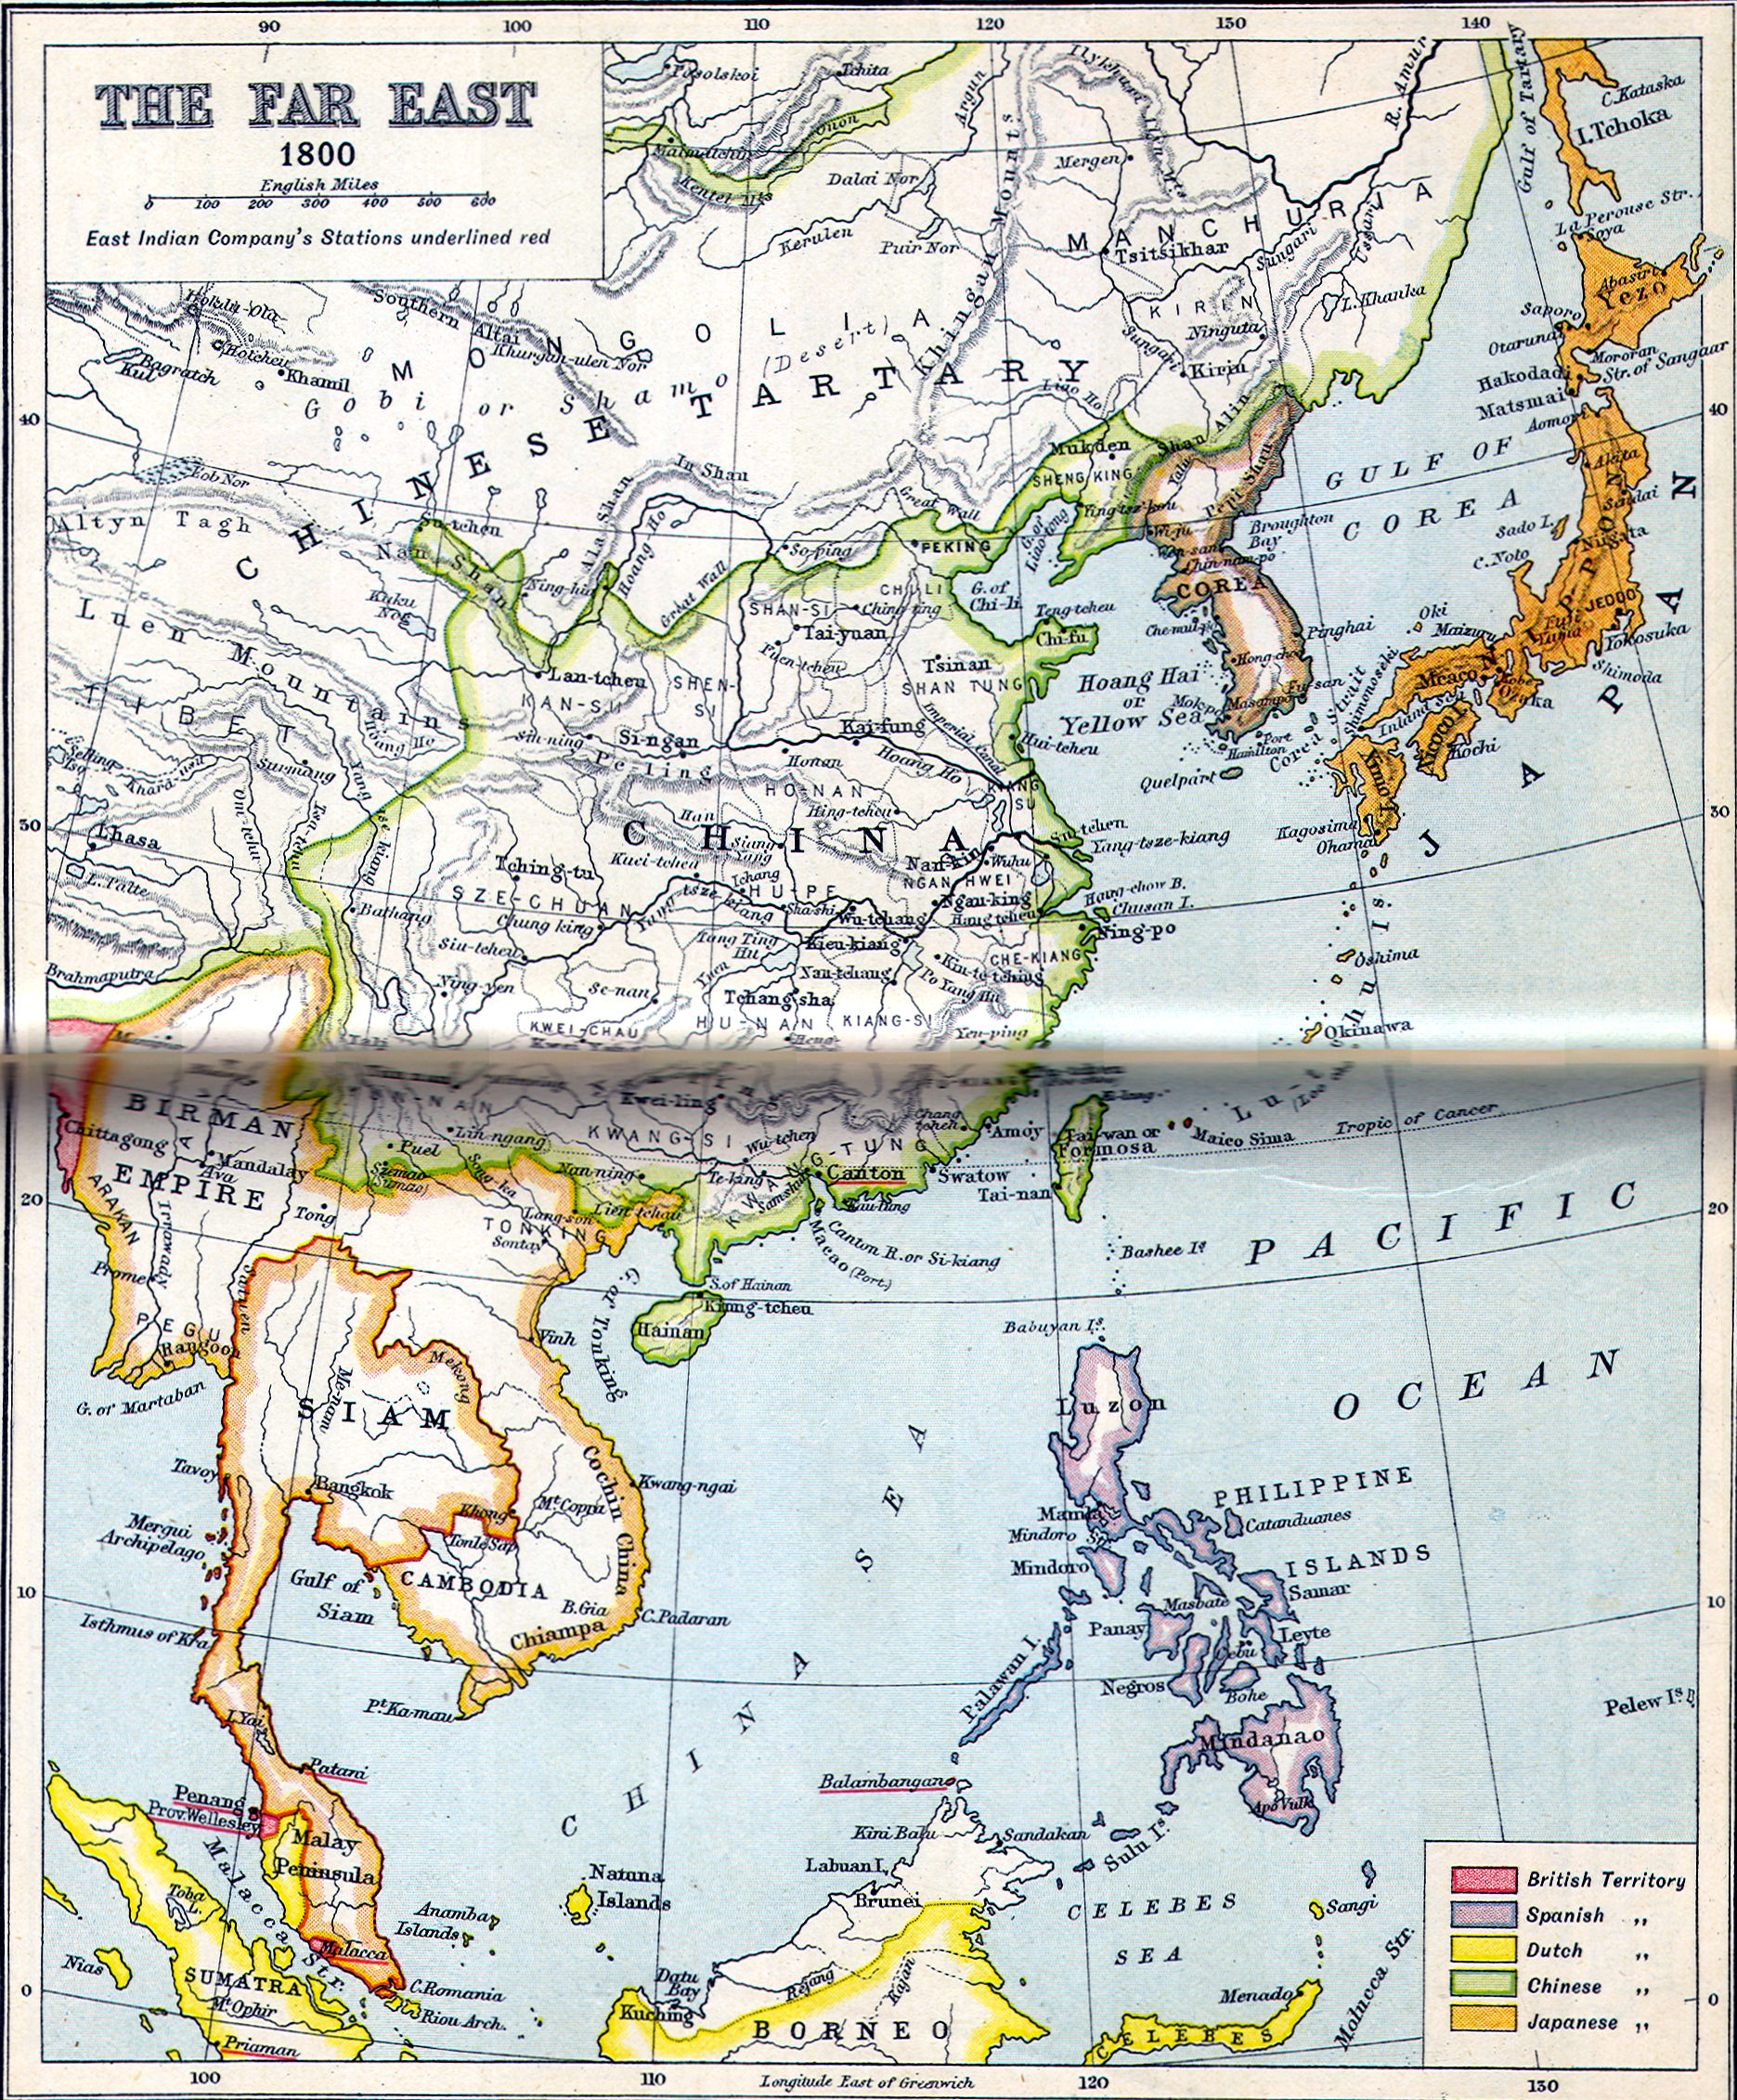 http://www.heritage-history.com/maps/lhasia/asia023.jpg